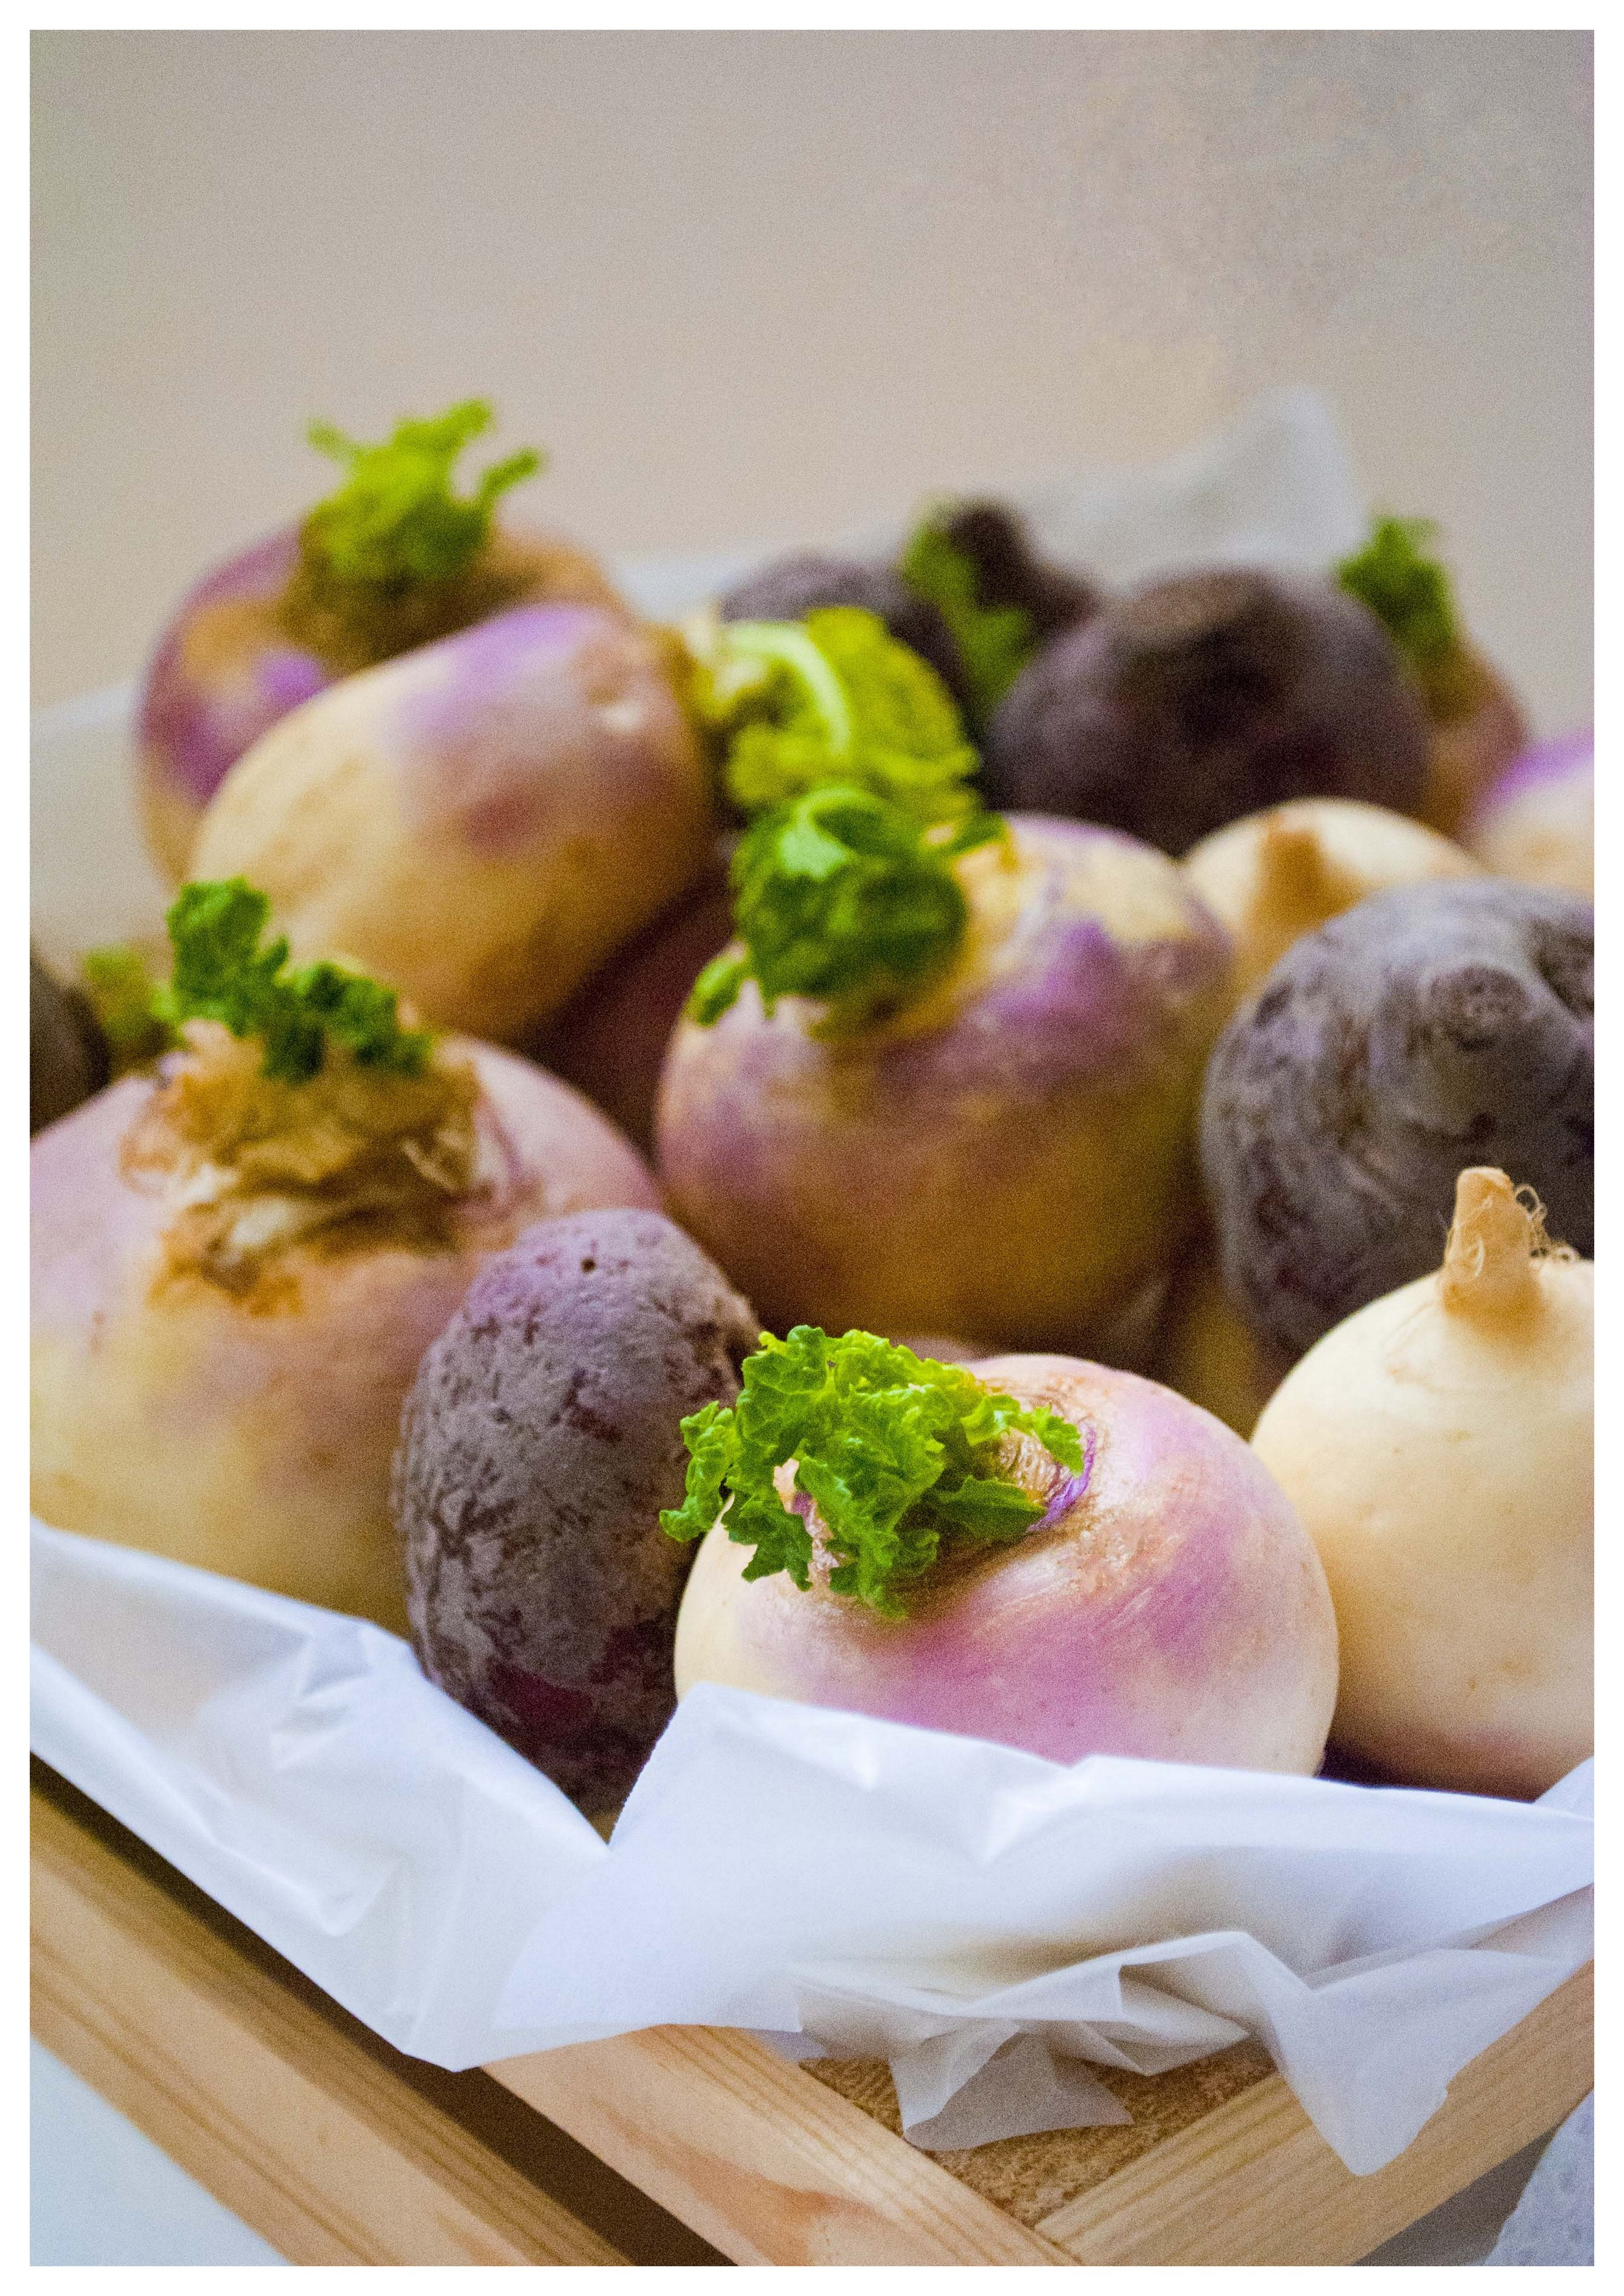 Turnips in a box